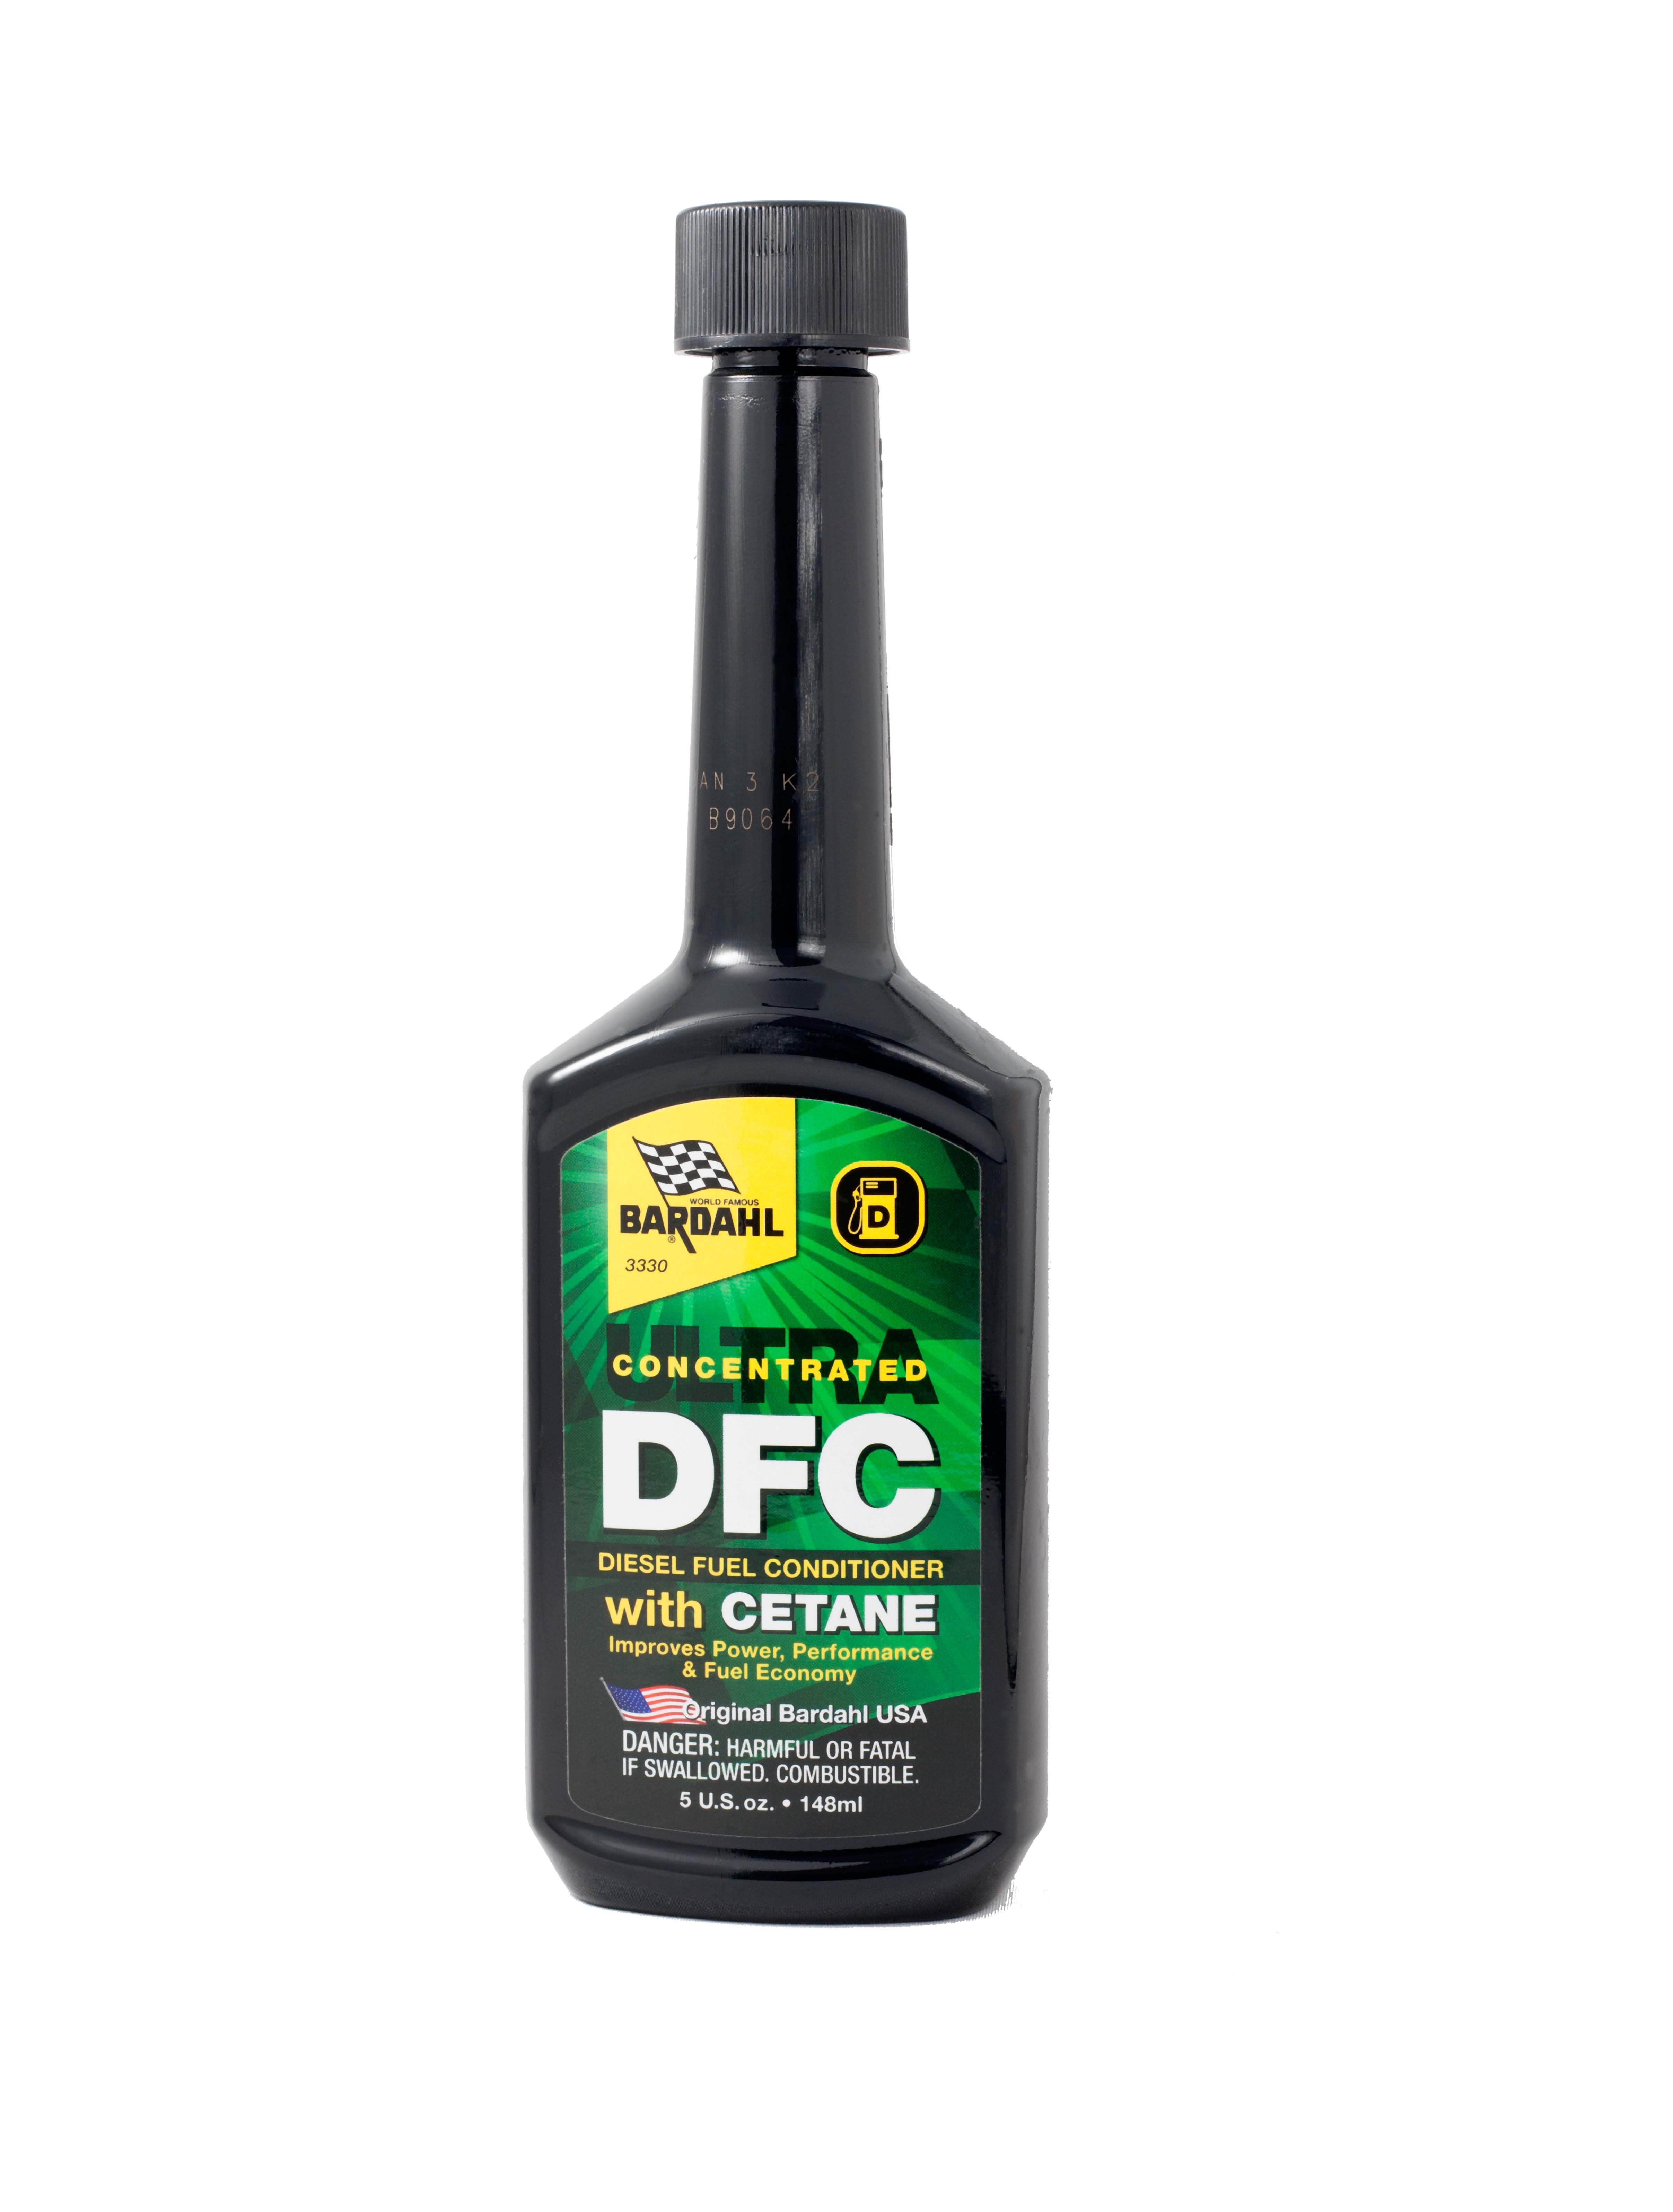 Diesel Fuel Conditioner Dfc With Cetane Ultra Concentrated 148ml Recommended Price Rm16 00 Diesel Fuel Fuel Conditioner